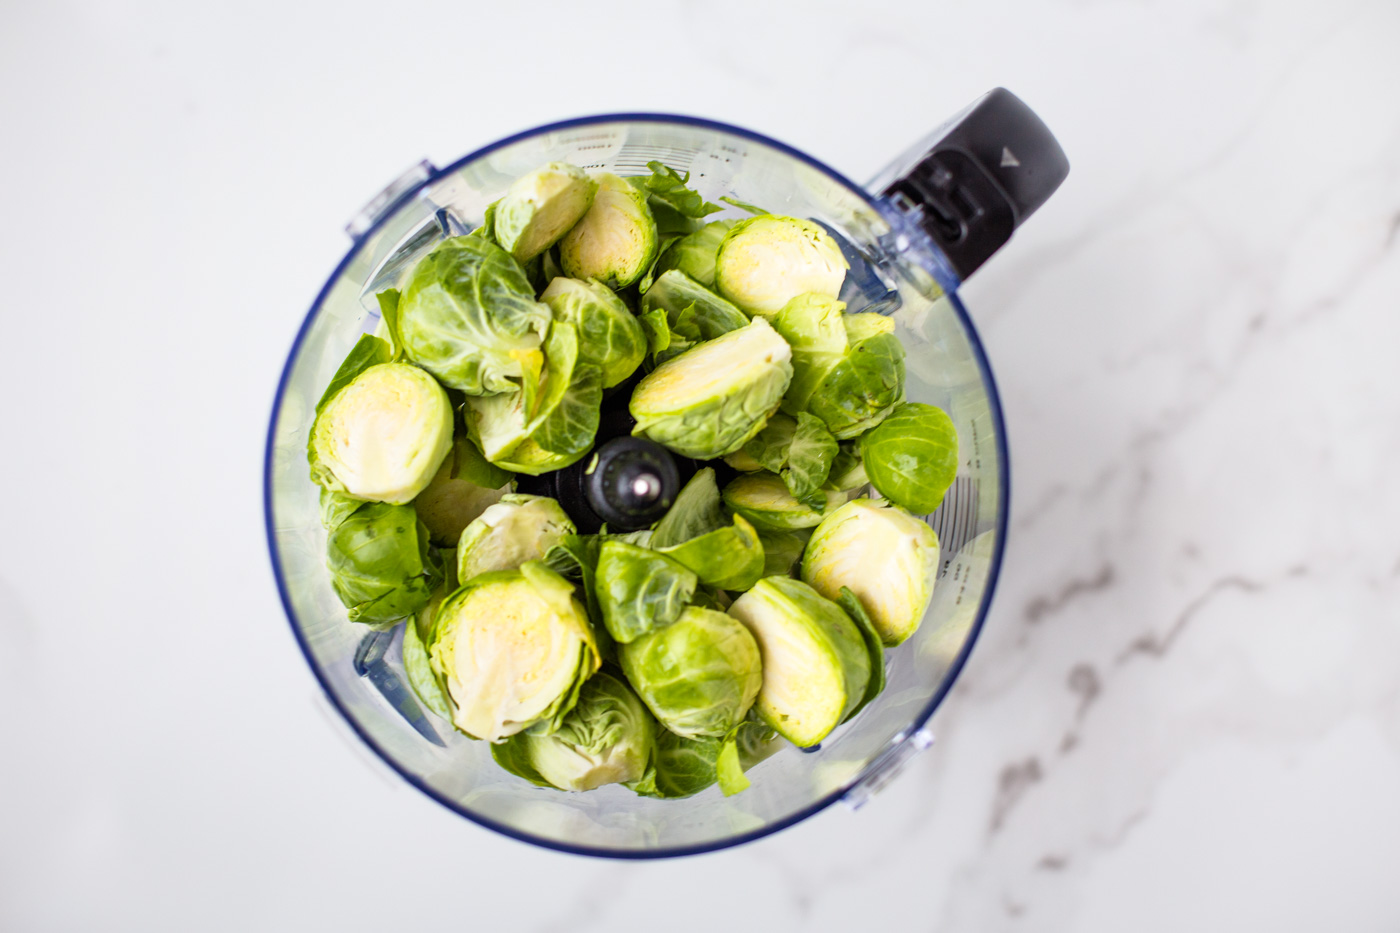 whole brussels sprouts in food processor